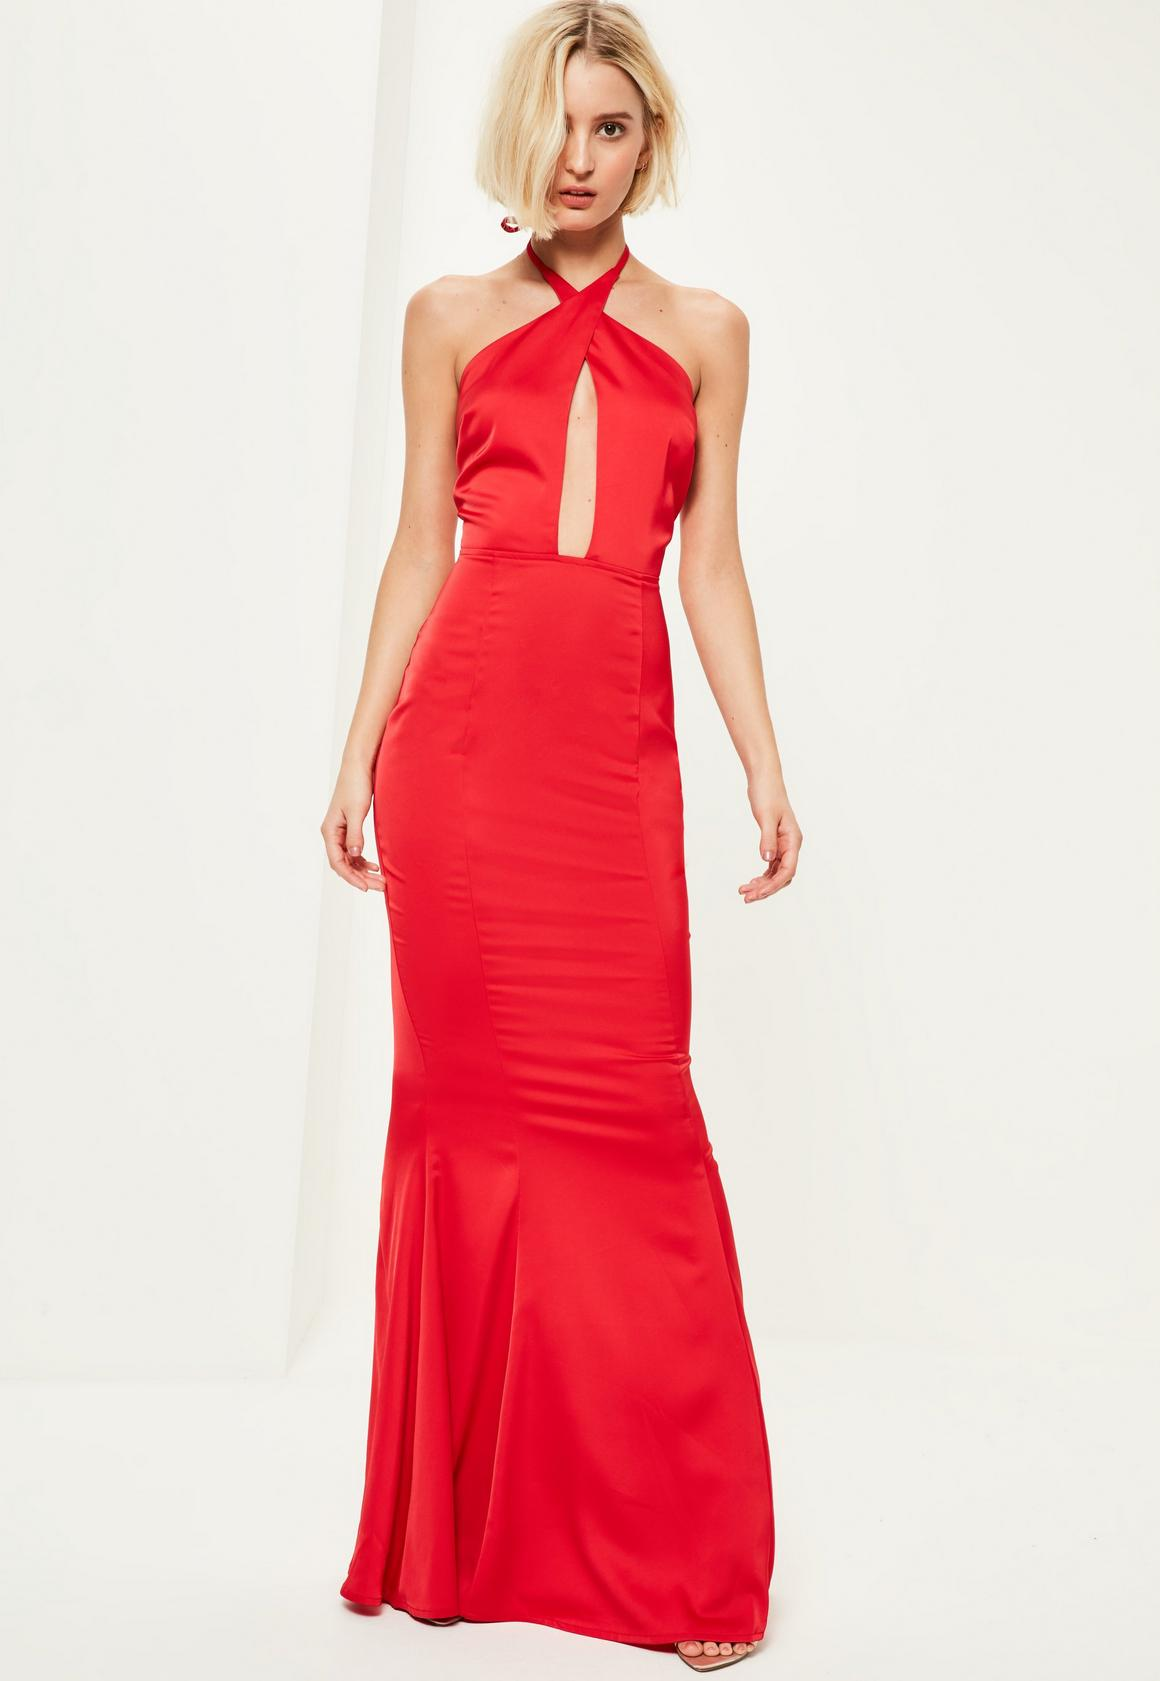 Red Plunge Halterneck Fishtail Maxi Dress - Missguided